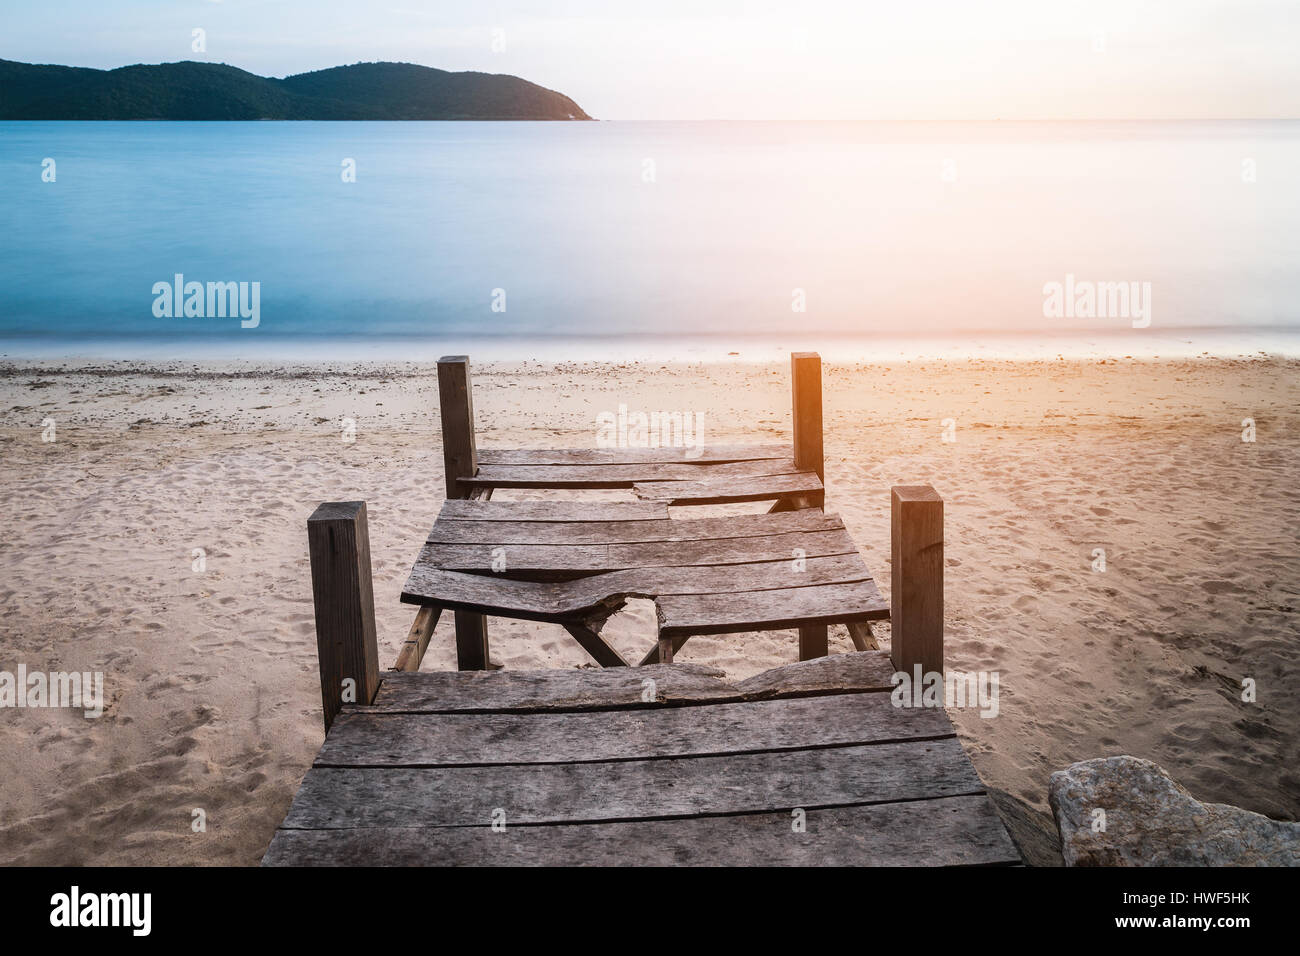 Good Old Broken Wood Terrace On Yellow Sand Beach. Water In Blue With Stock  Photo: 136172671   Alamy